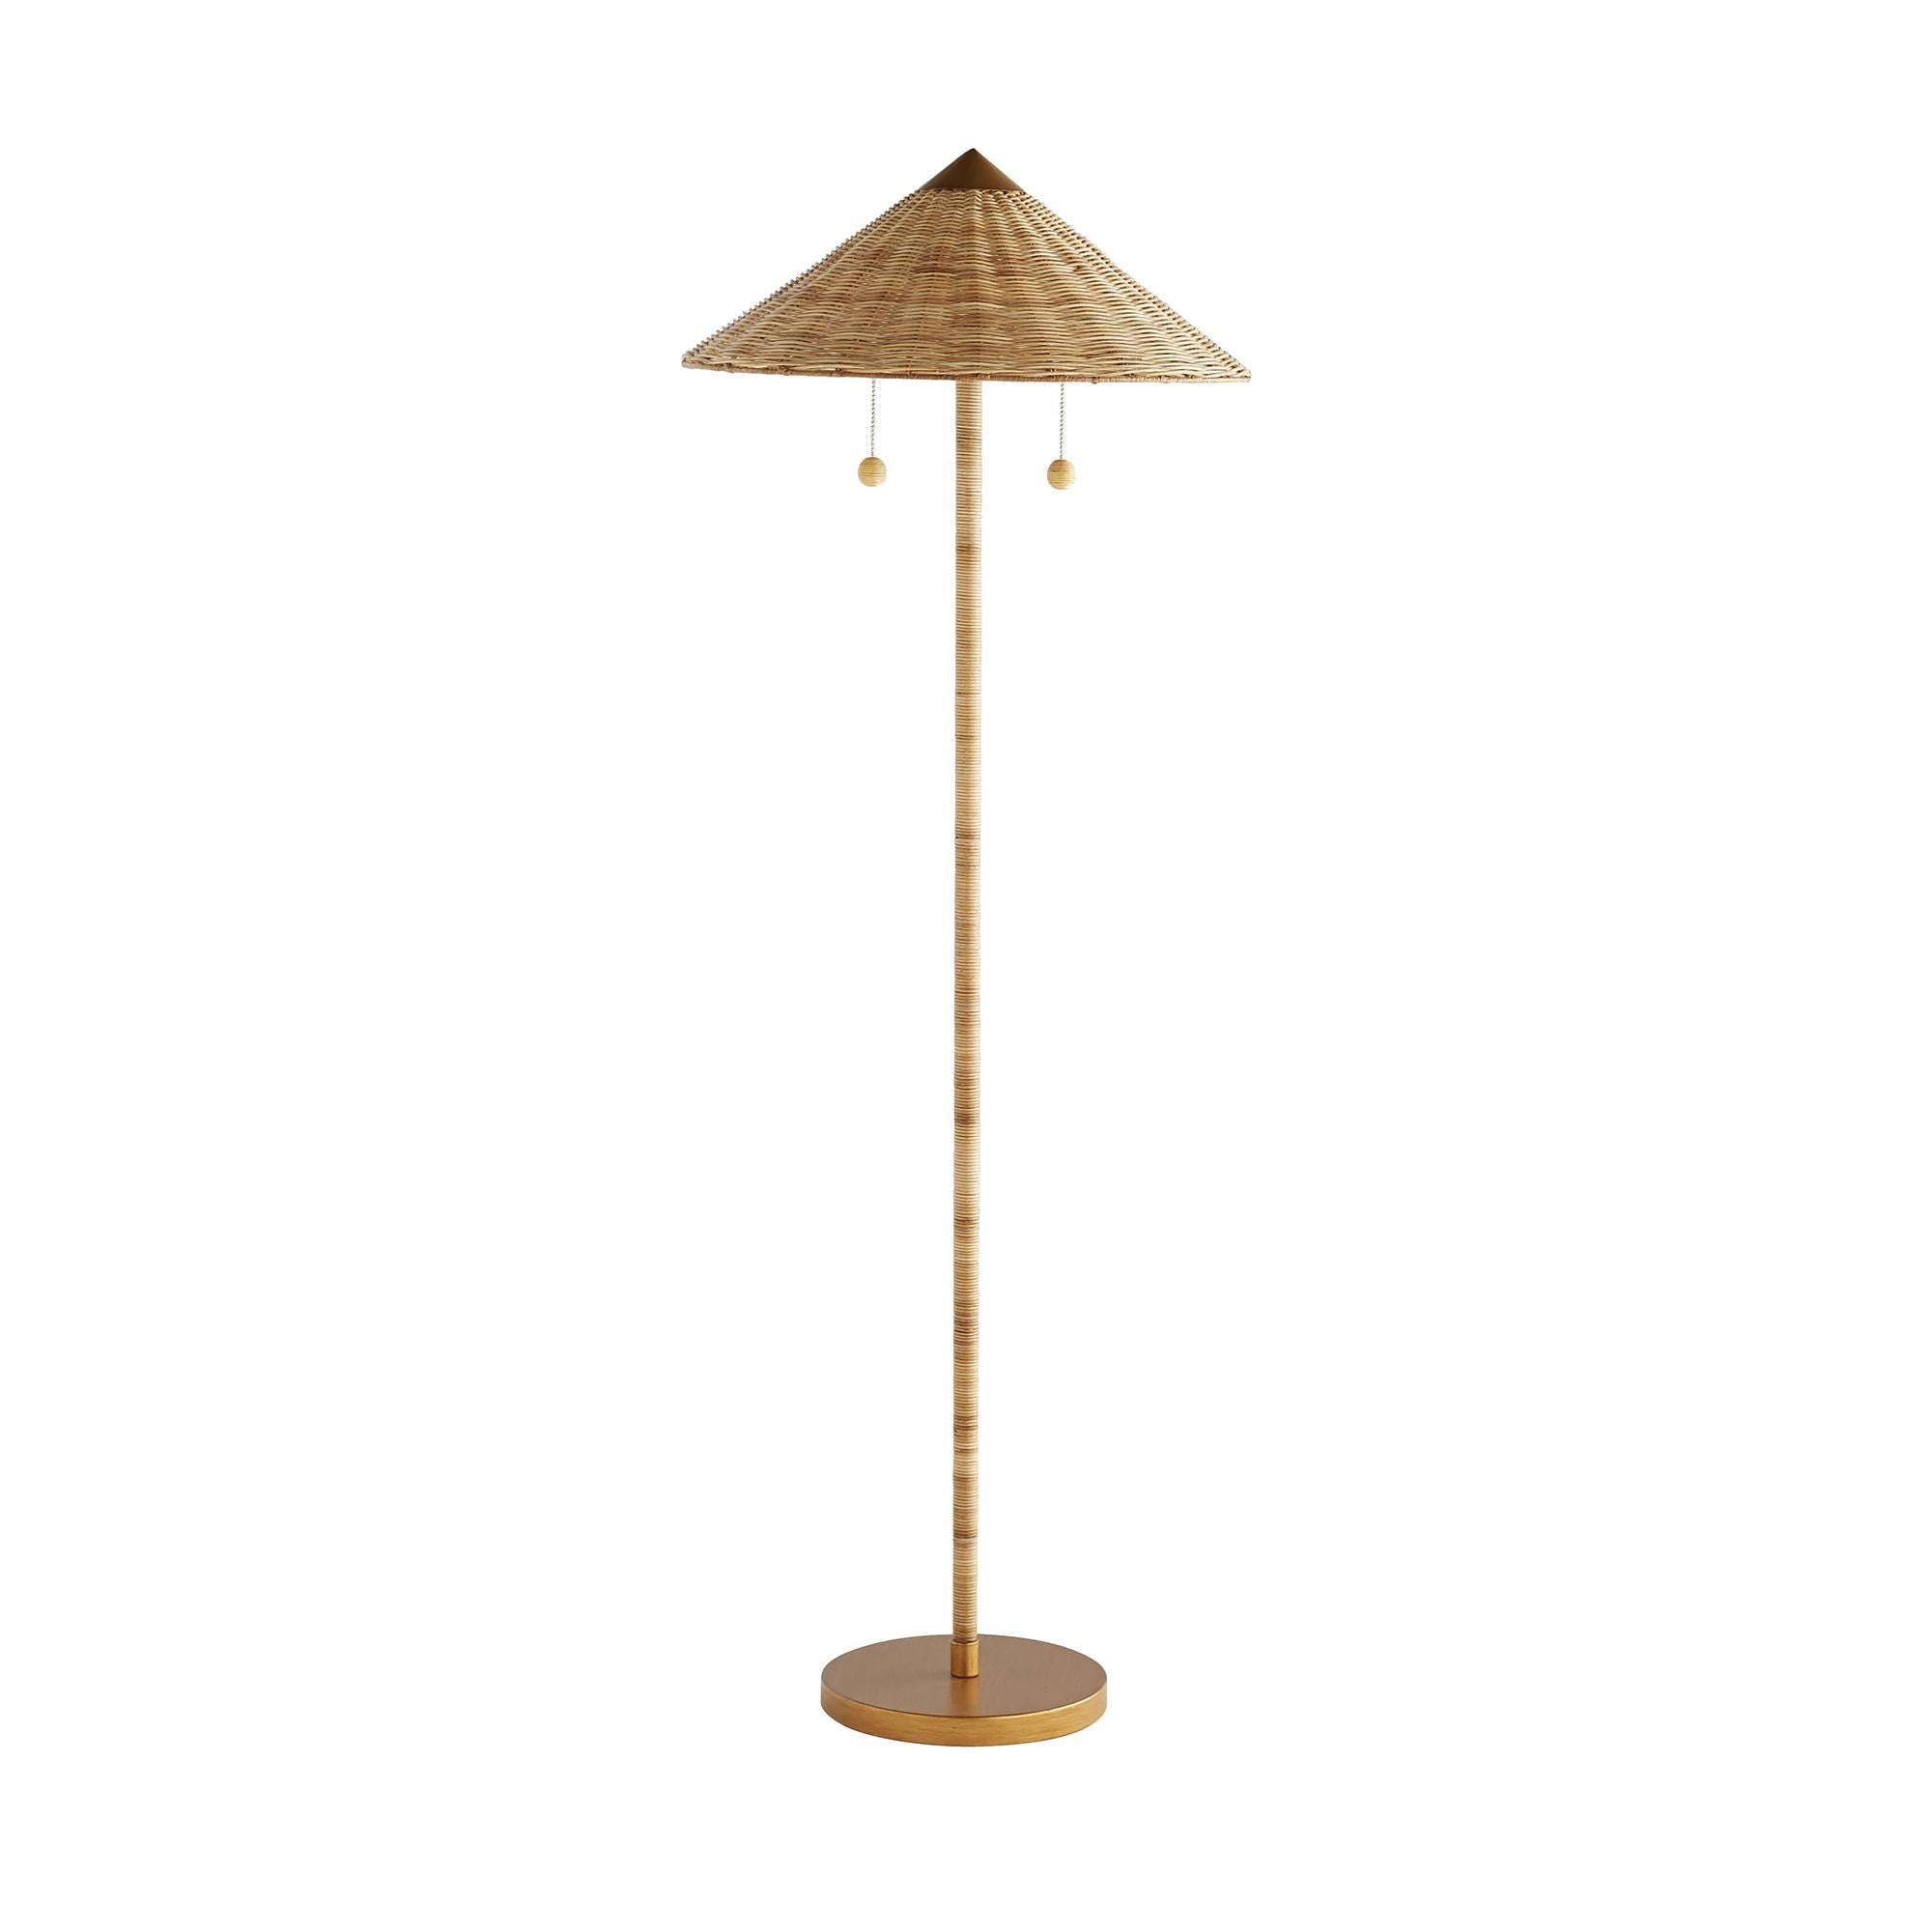 Furbish Studio - Rattan Wicker Parasol Floor Lamp